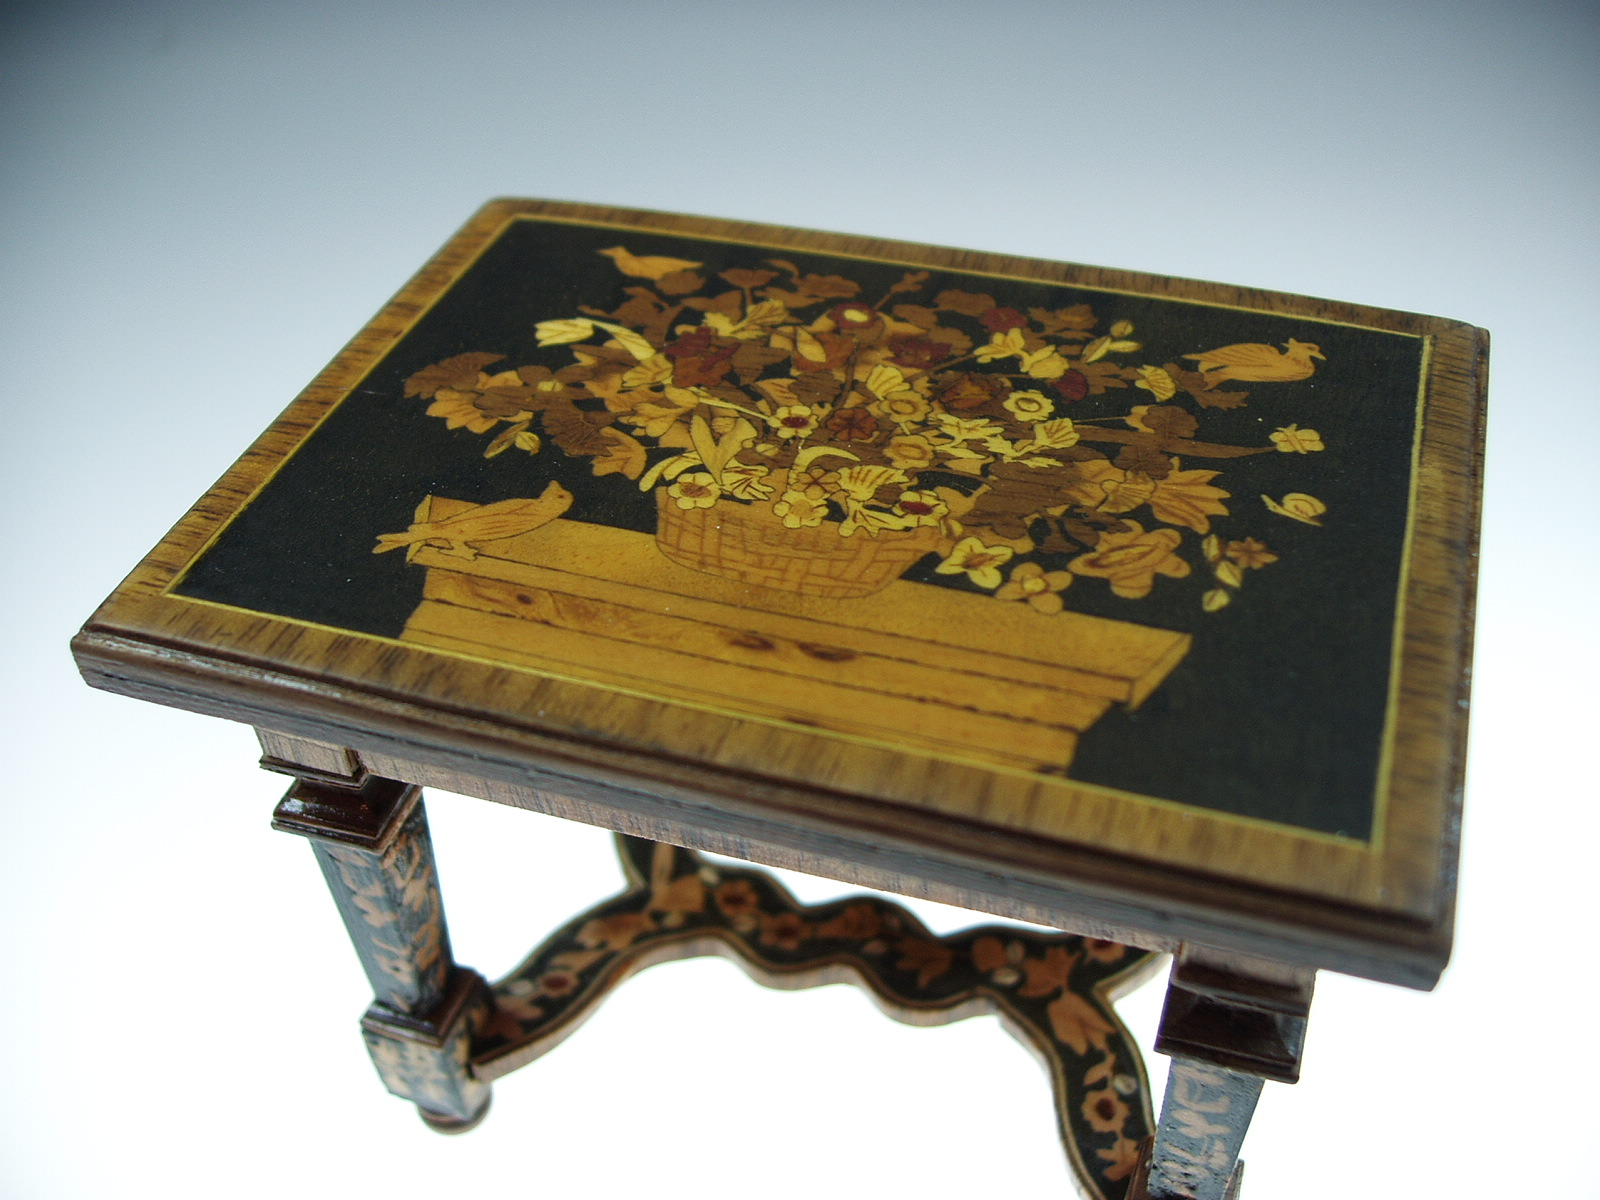 Marquetry Table by Gradus Ulfman